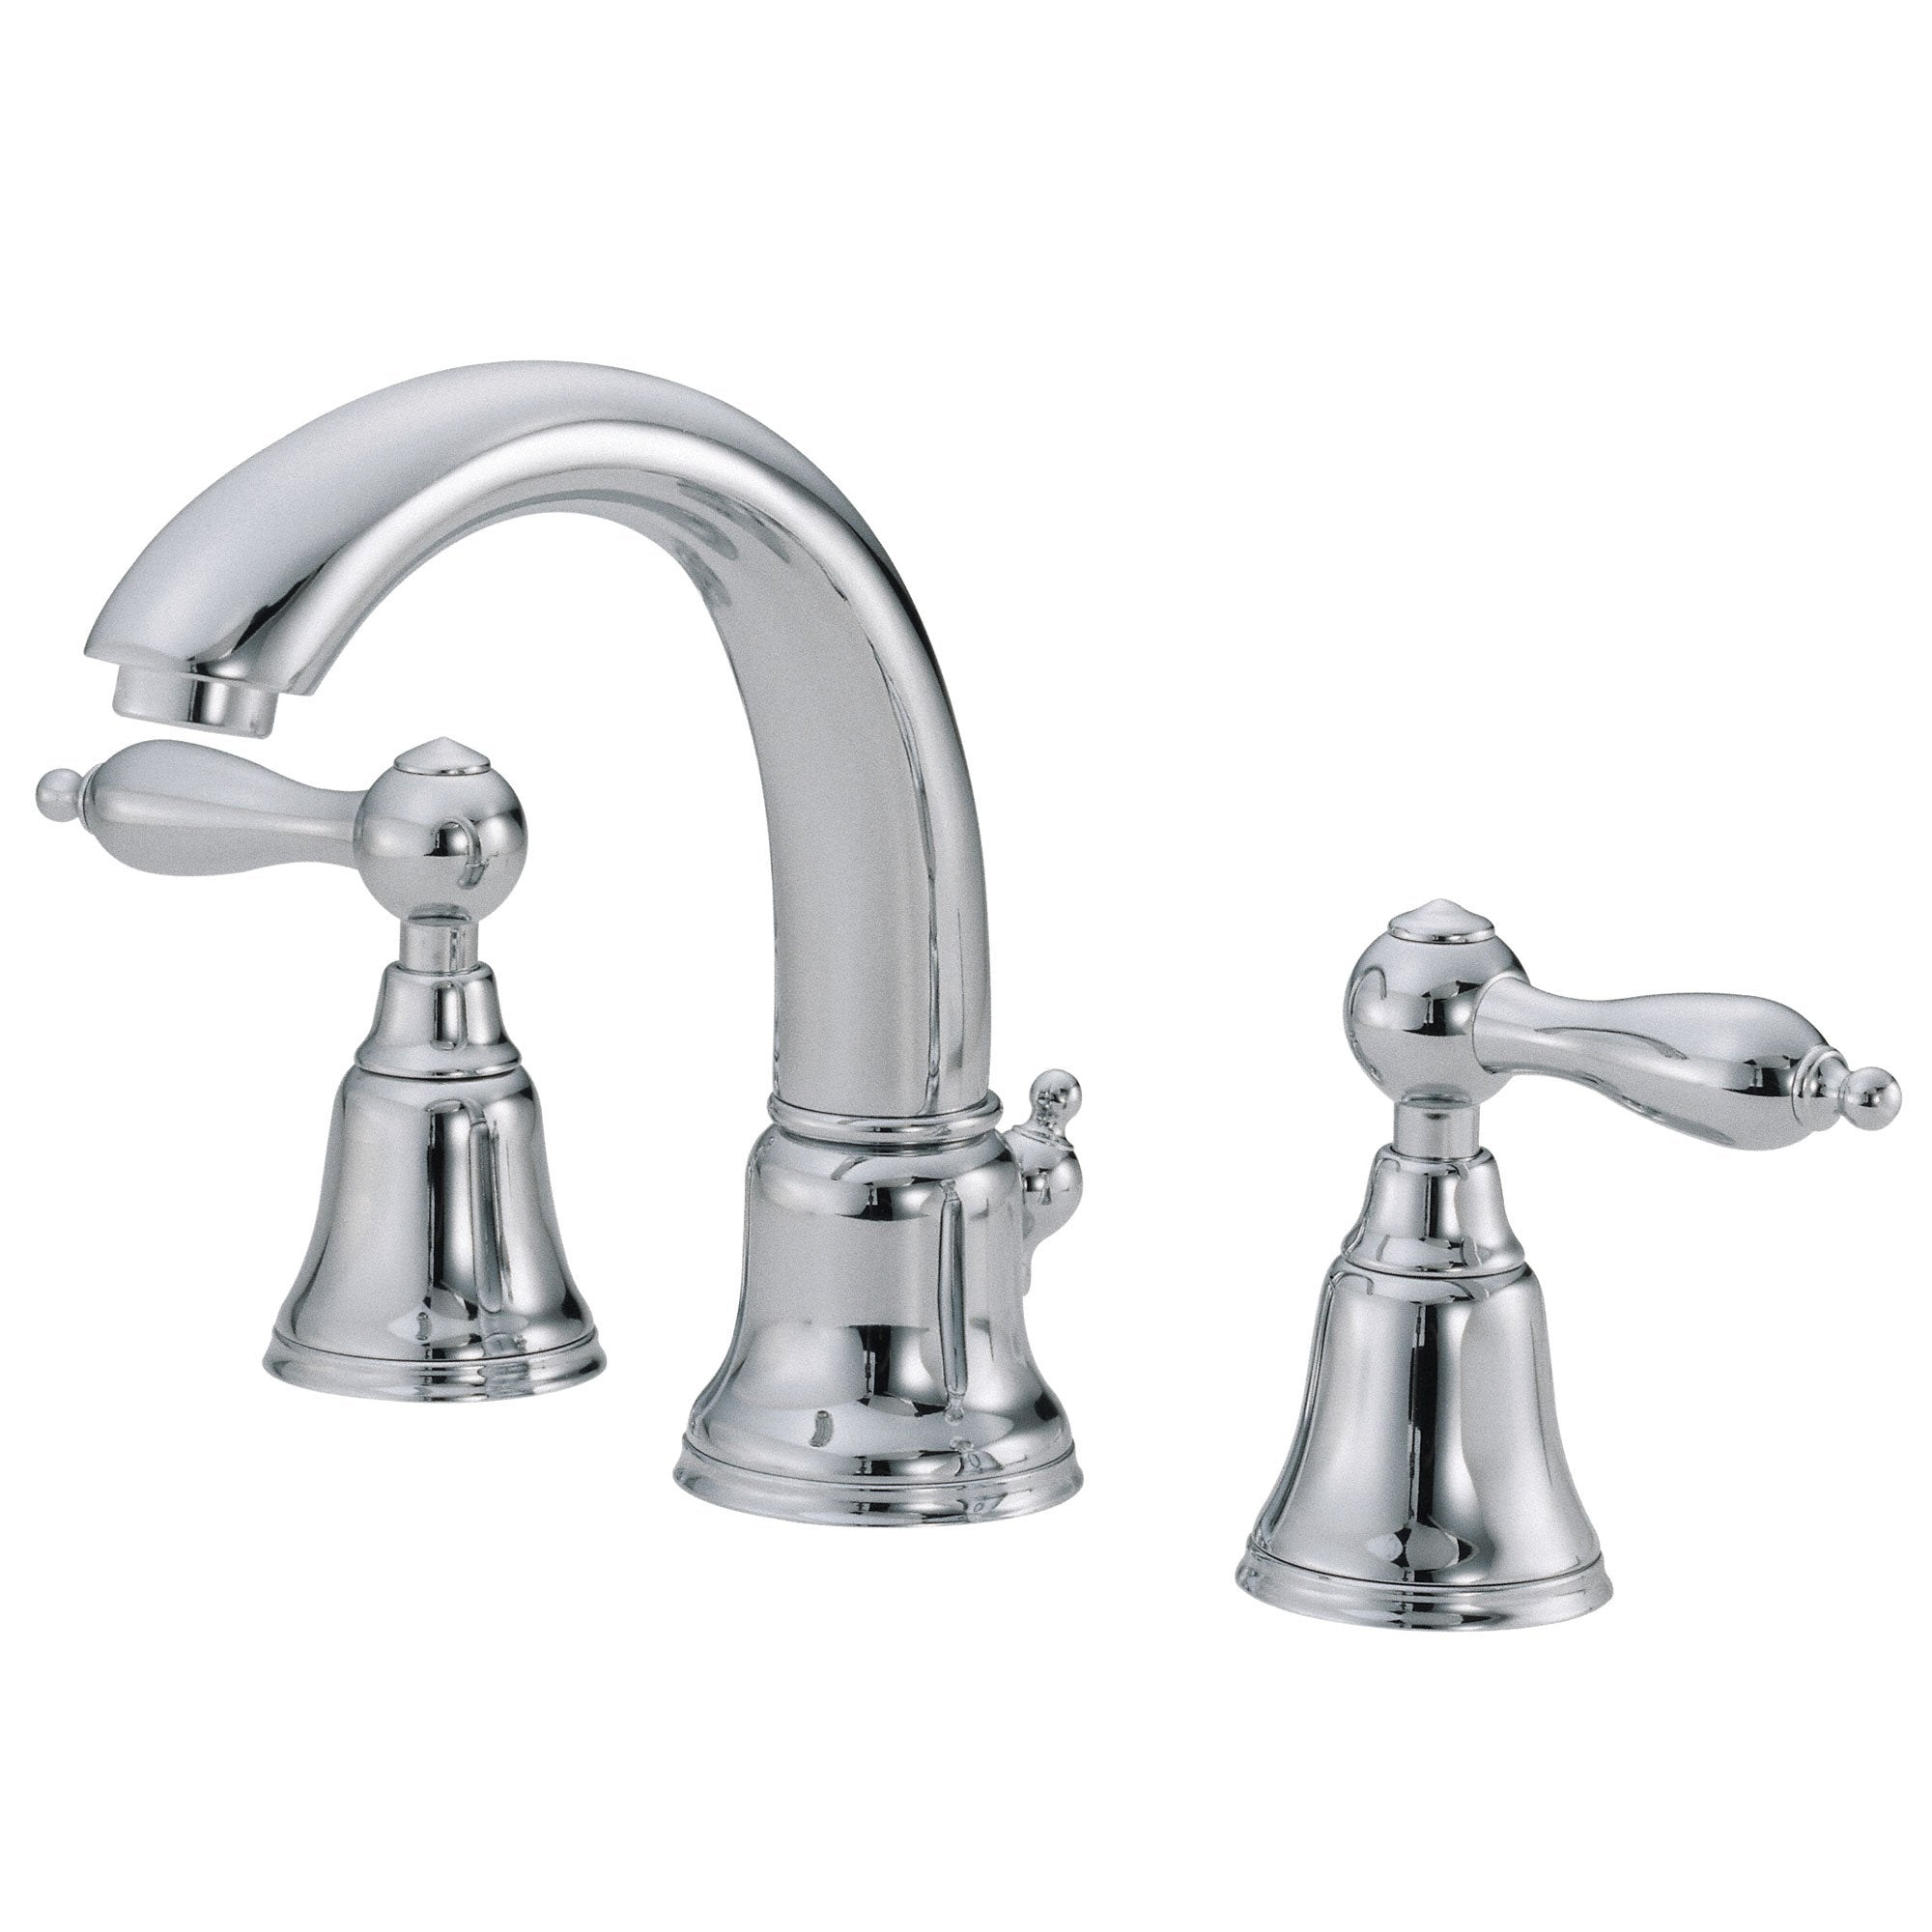 Danze Fairmont Chrome 2 Lever Handle Mini-Widespread Bathroom Sink Faucet